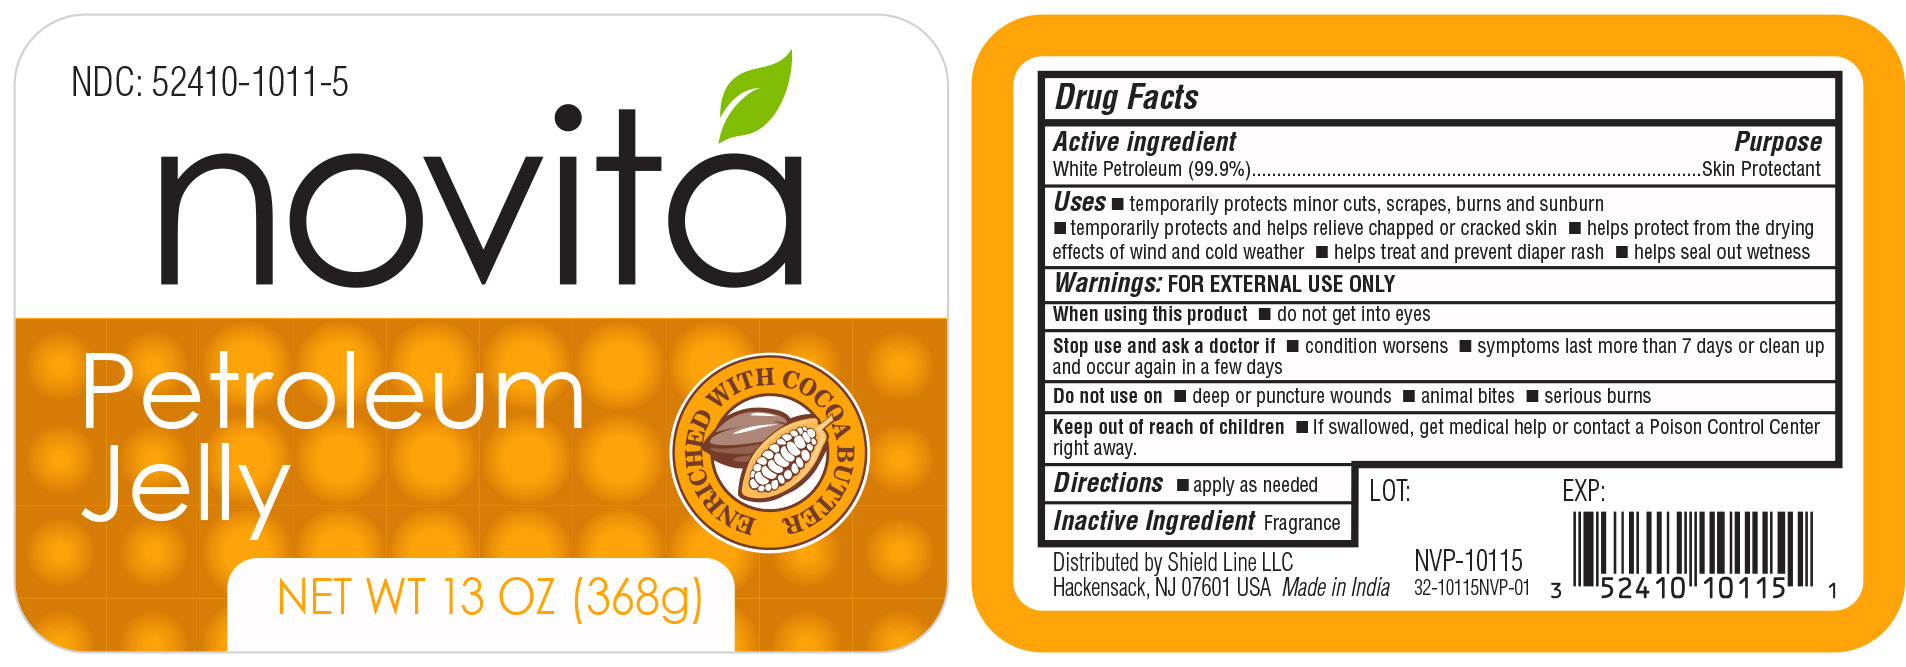 Package Label_368g